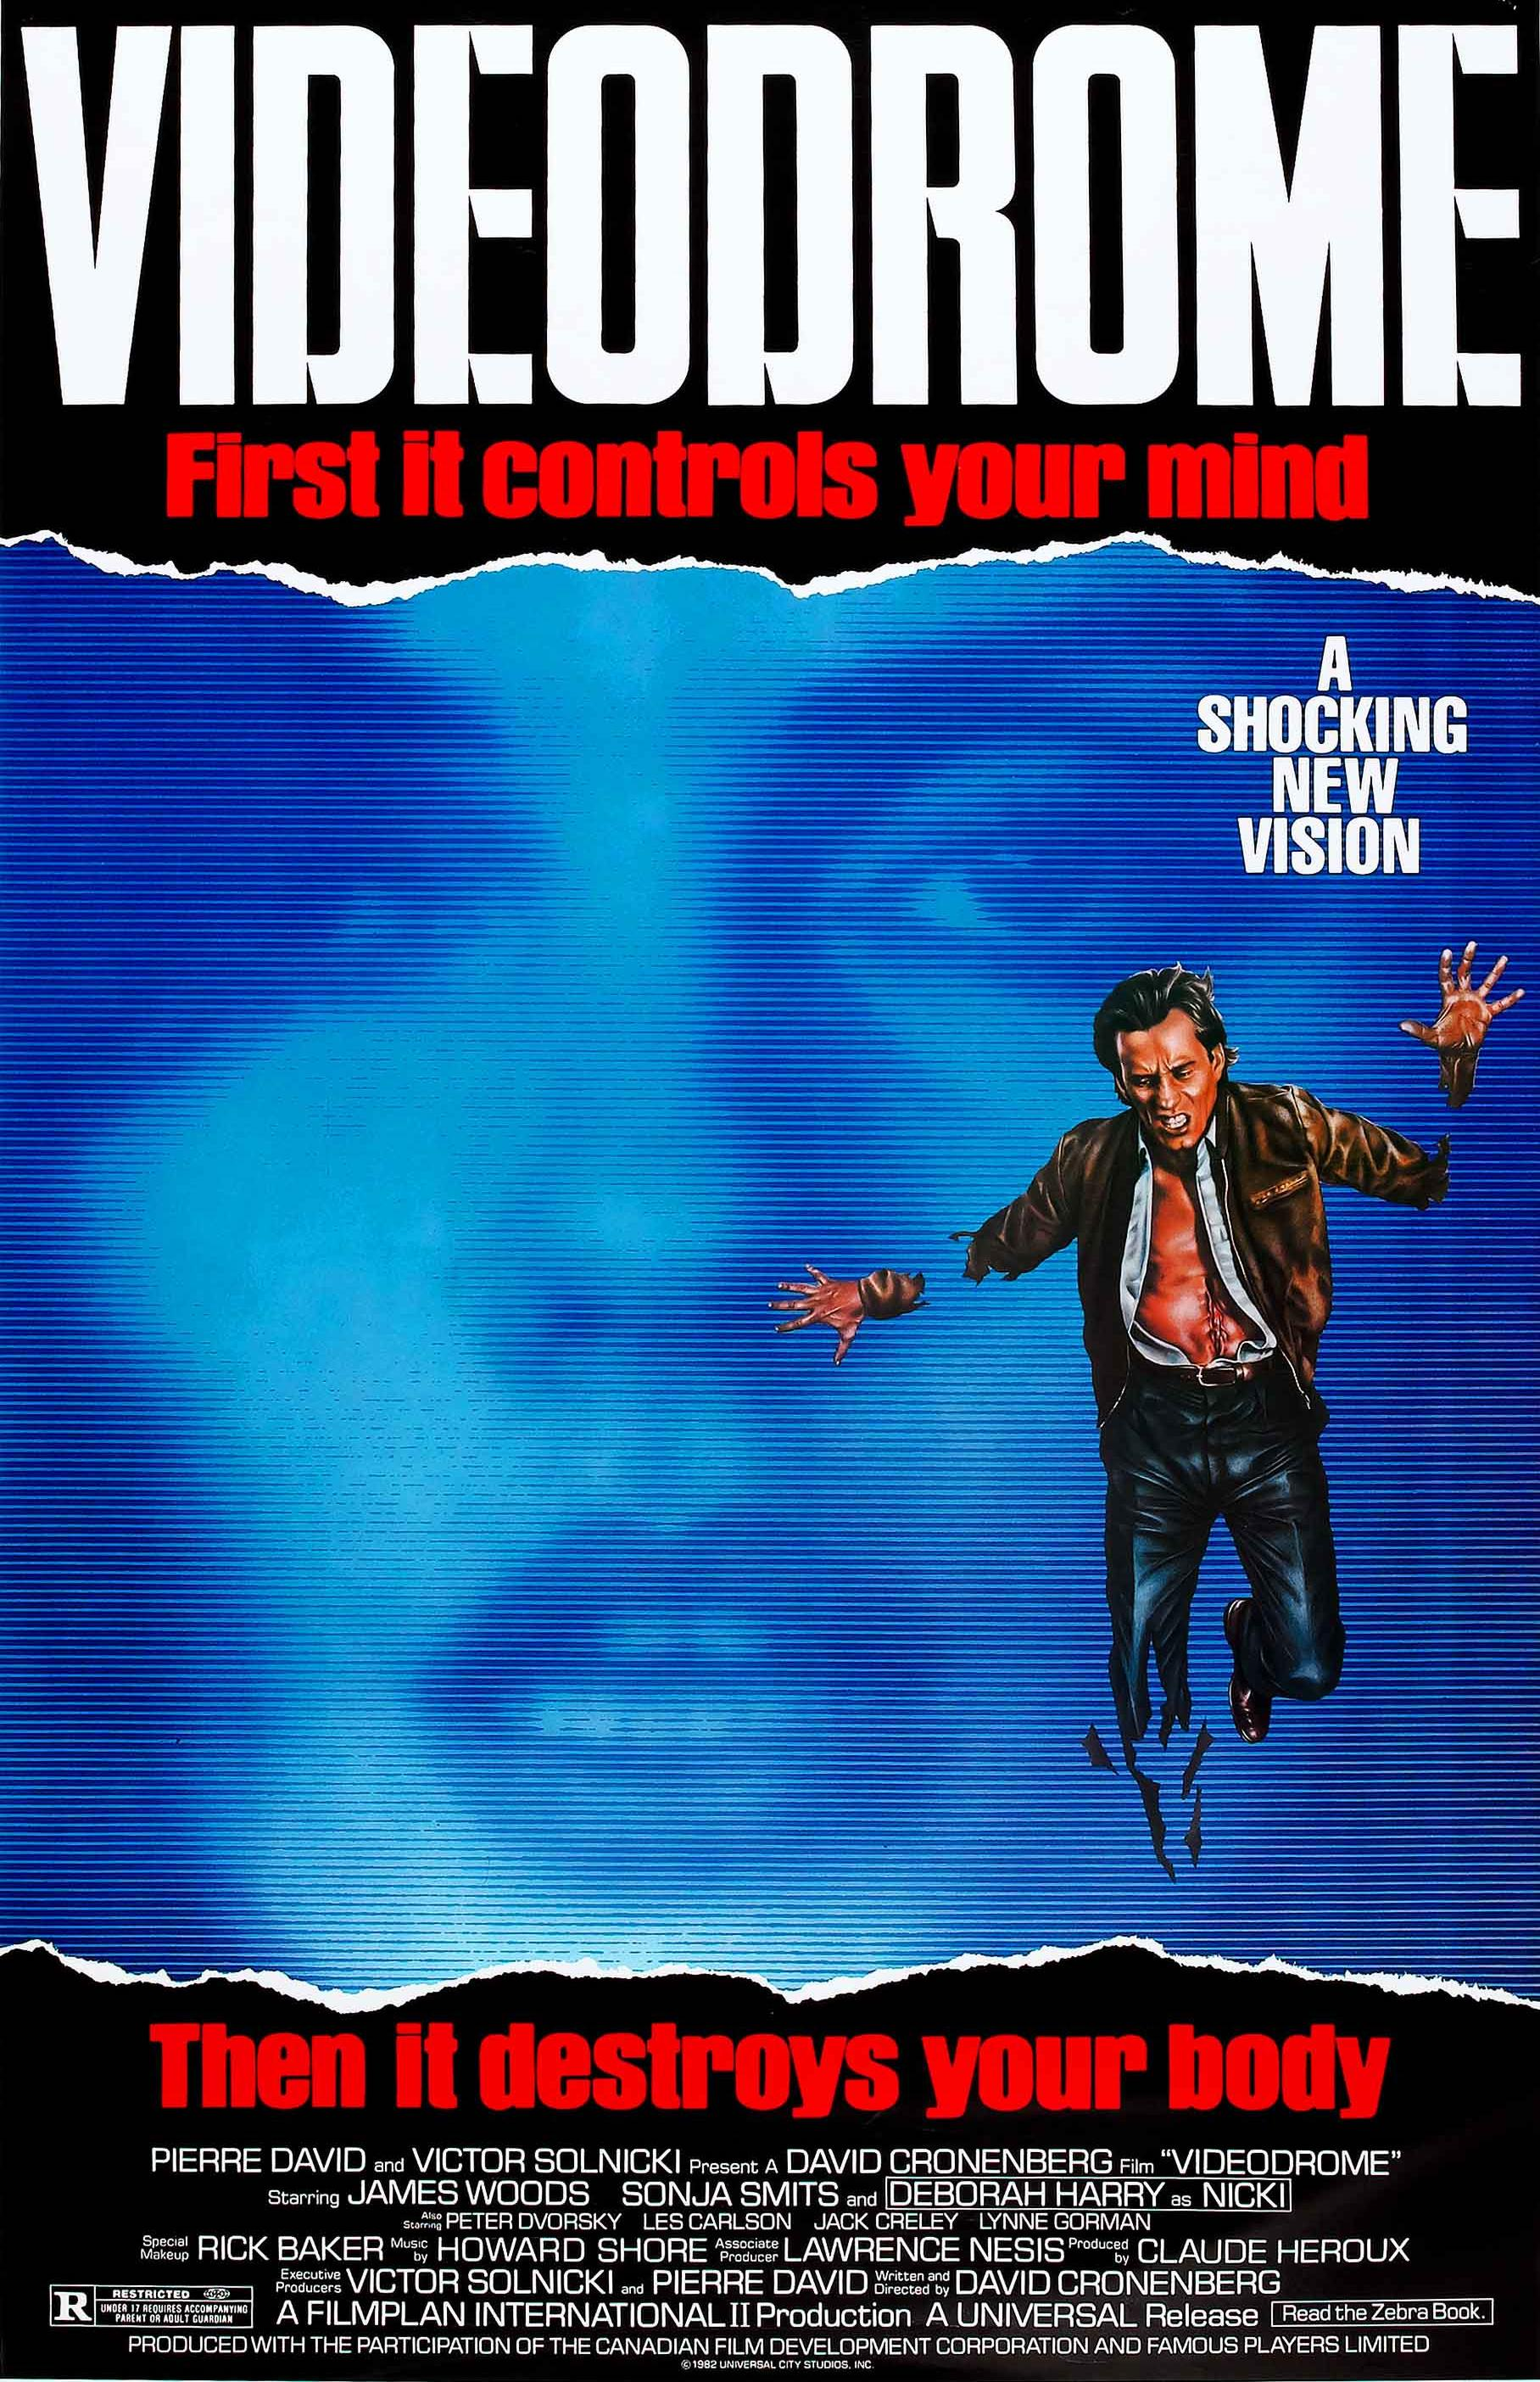 Videodrome is more of an Akira-style body-horror movie, released right before Akira. This movie resembles a cross between Bladerunner and The Thing, and we love it.